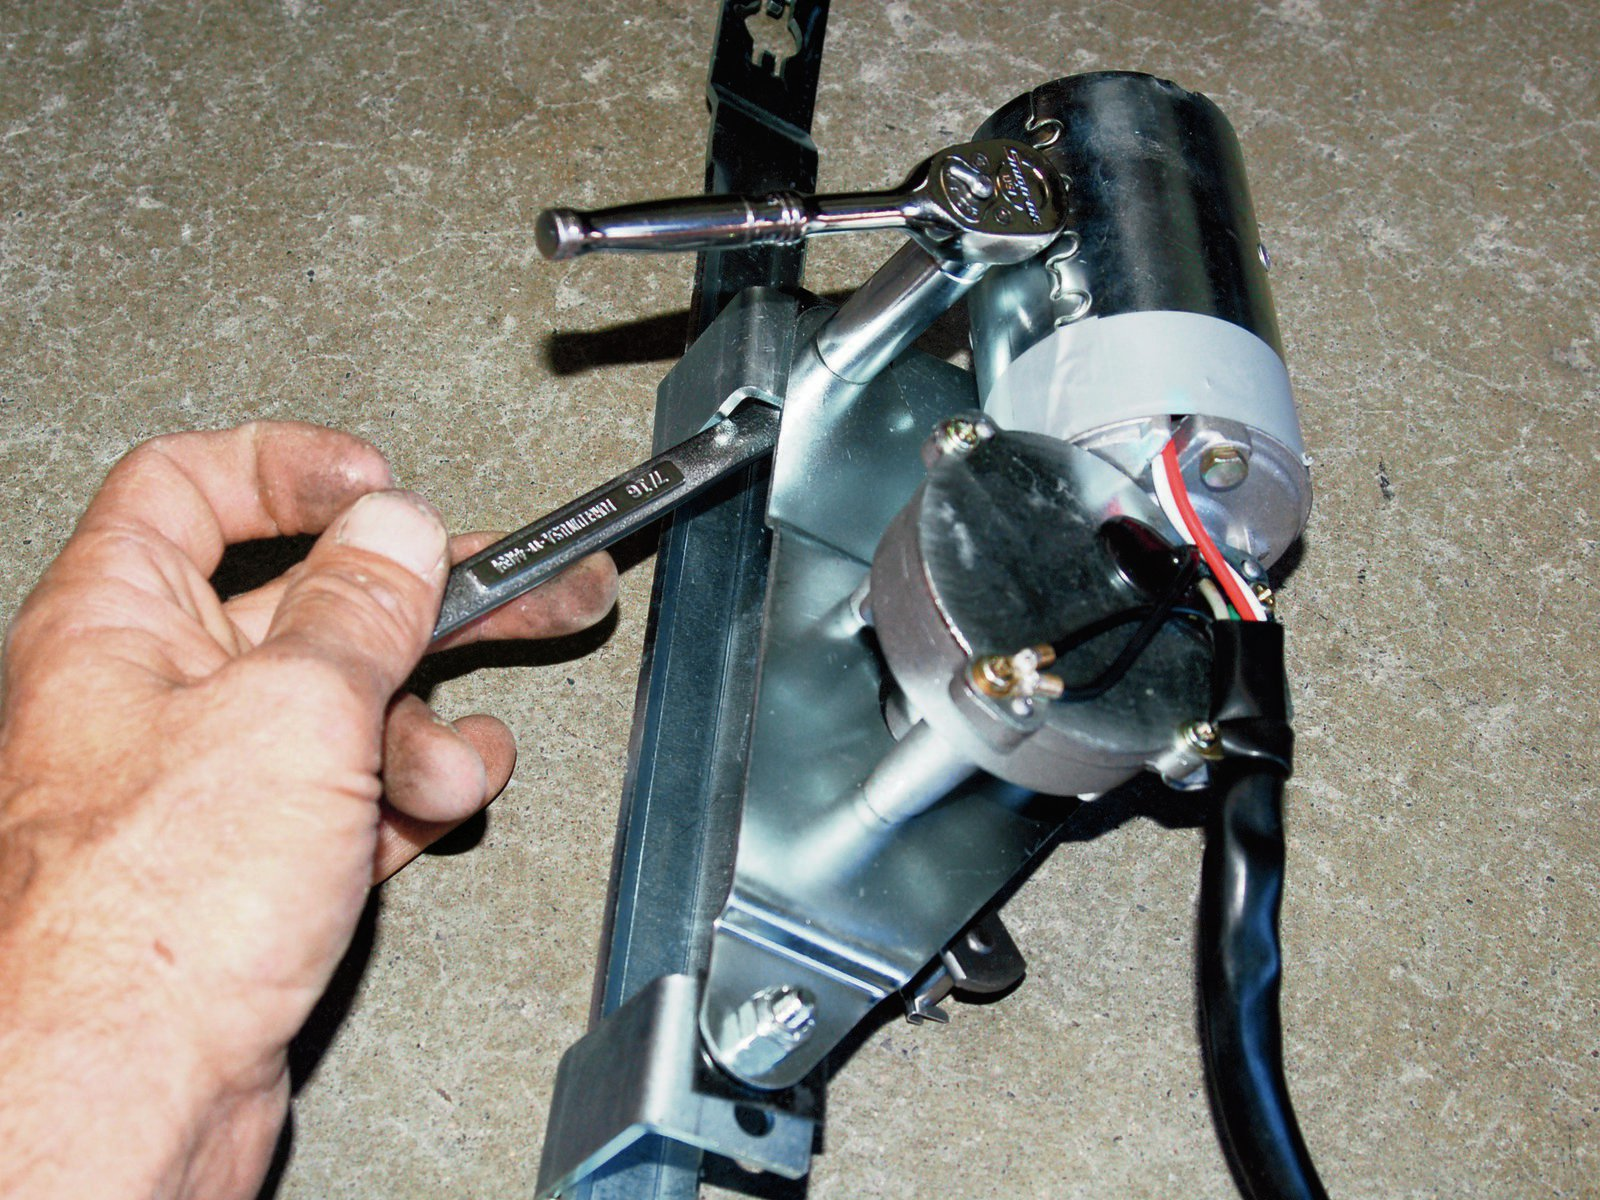 hight resolution of i preassembled the wiper motor to the mounting framework and installed the arms and